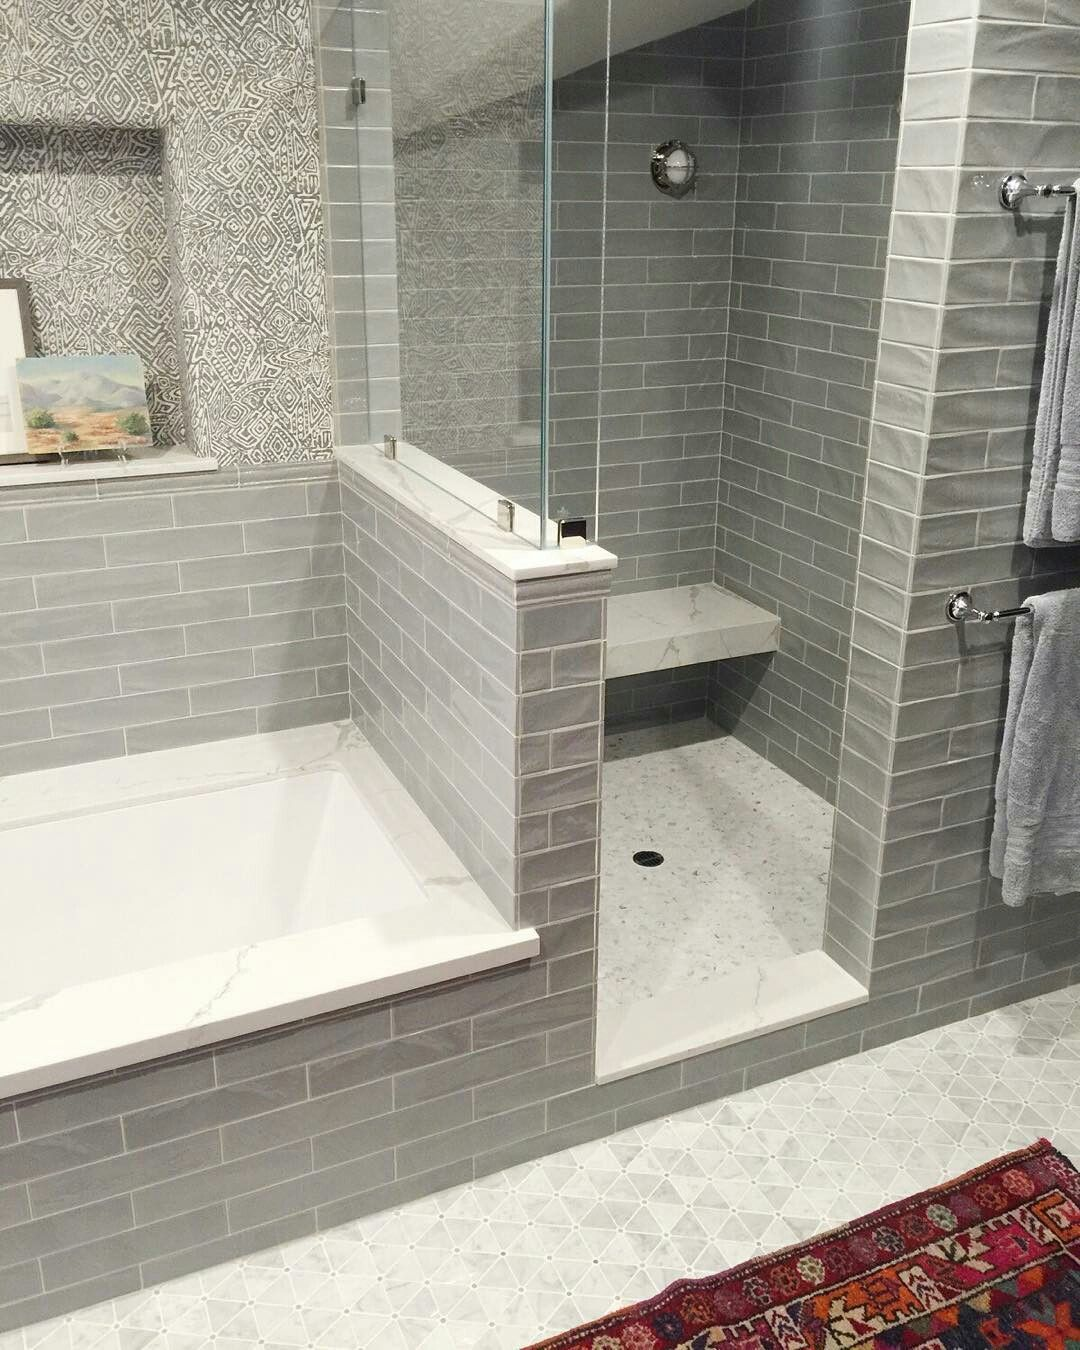 65 Most Popular Small Bathroom Remodel Ideas On A Budget In 2018 This Beautiful Look Was Created Wi Bathroom Remodel Shower Bathroom Tub Shower Modern Bathroom